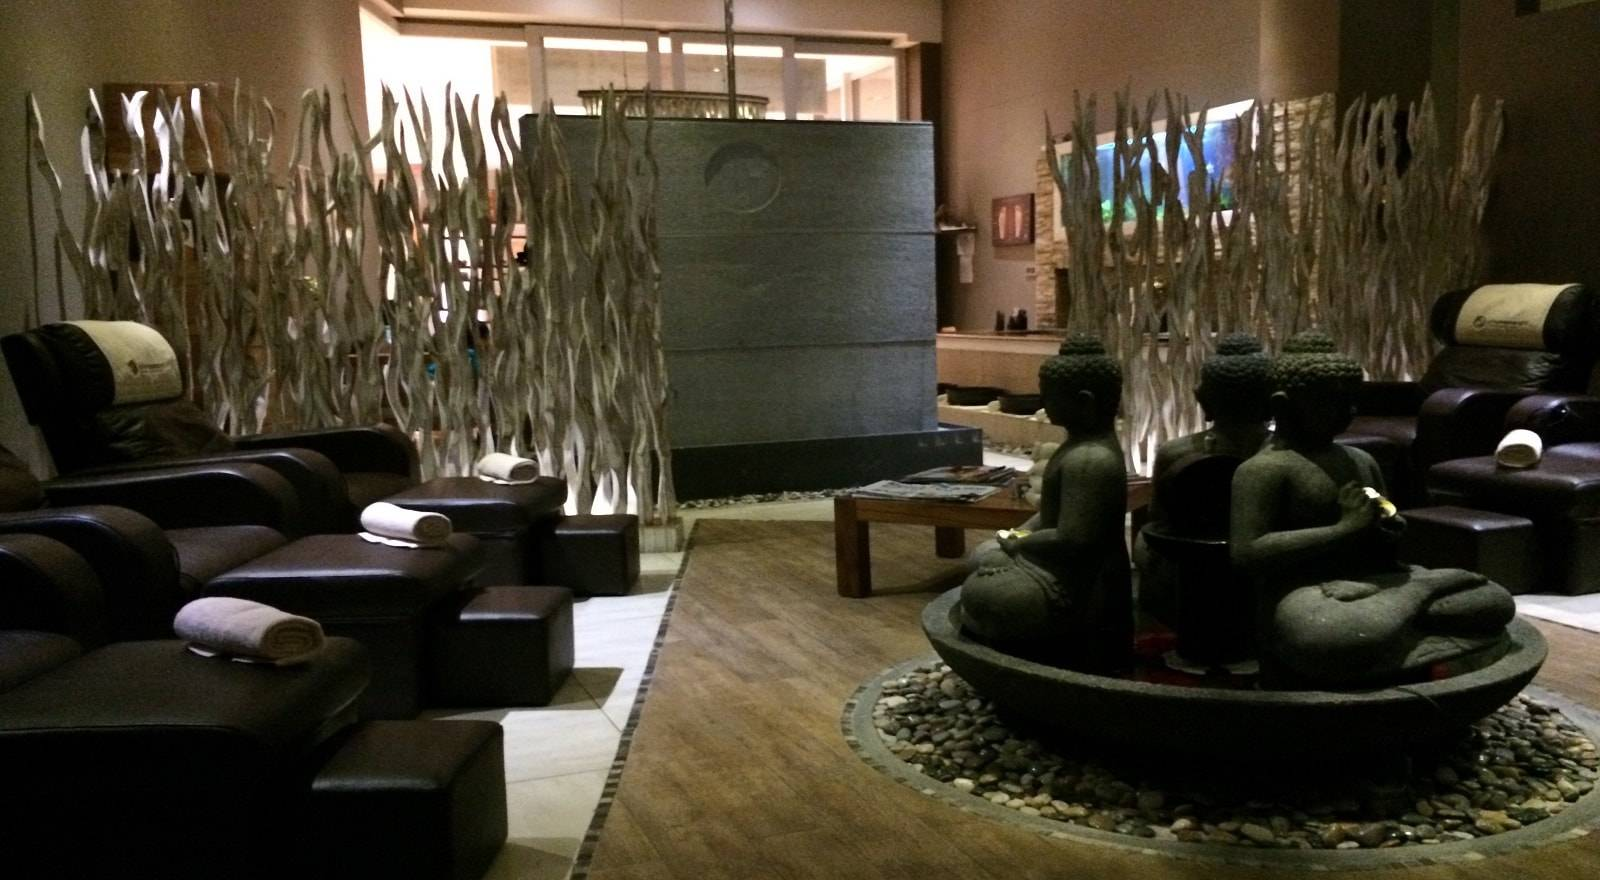 Spa Experience - Tranquillity Head & Shoulder